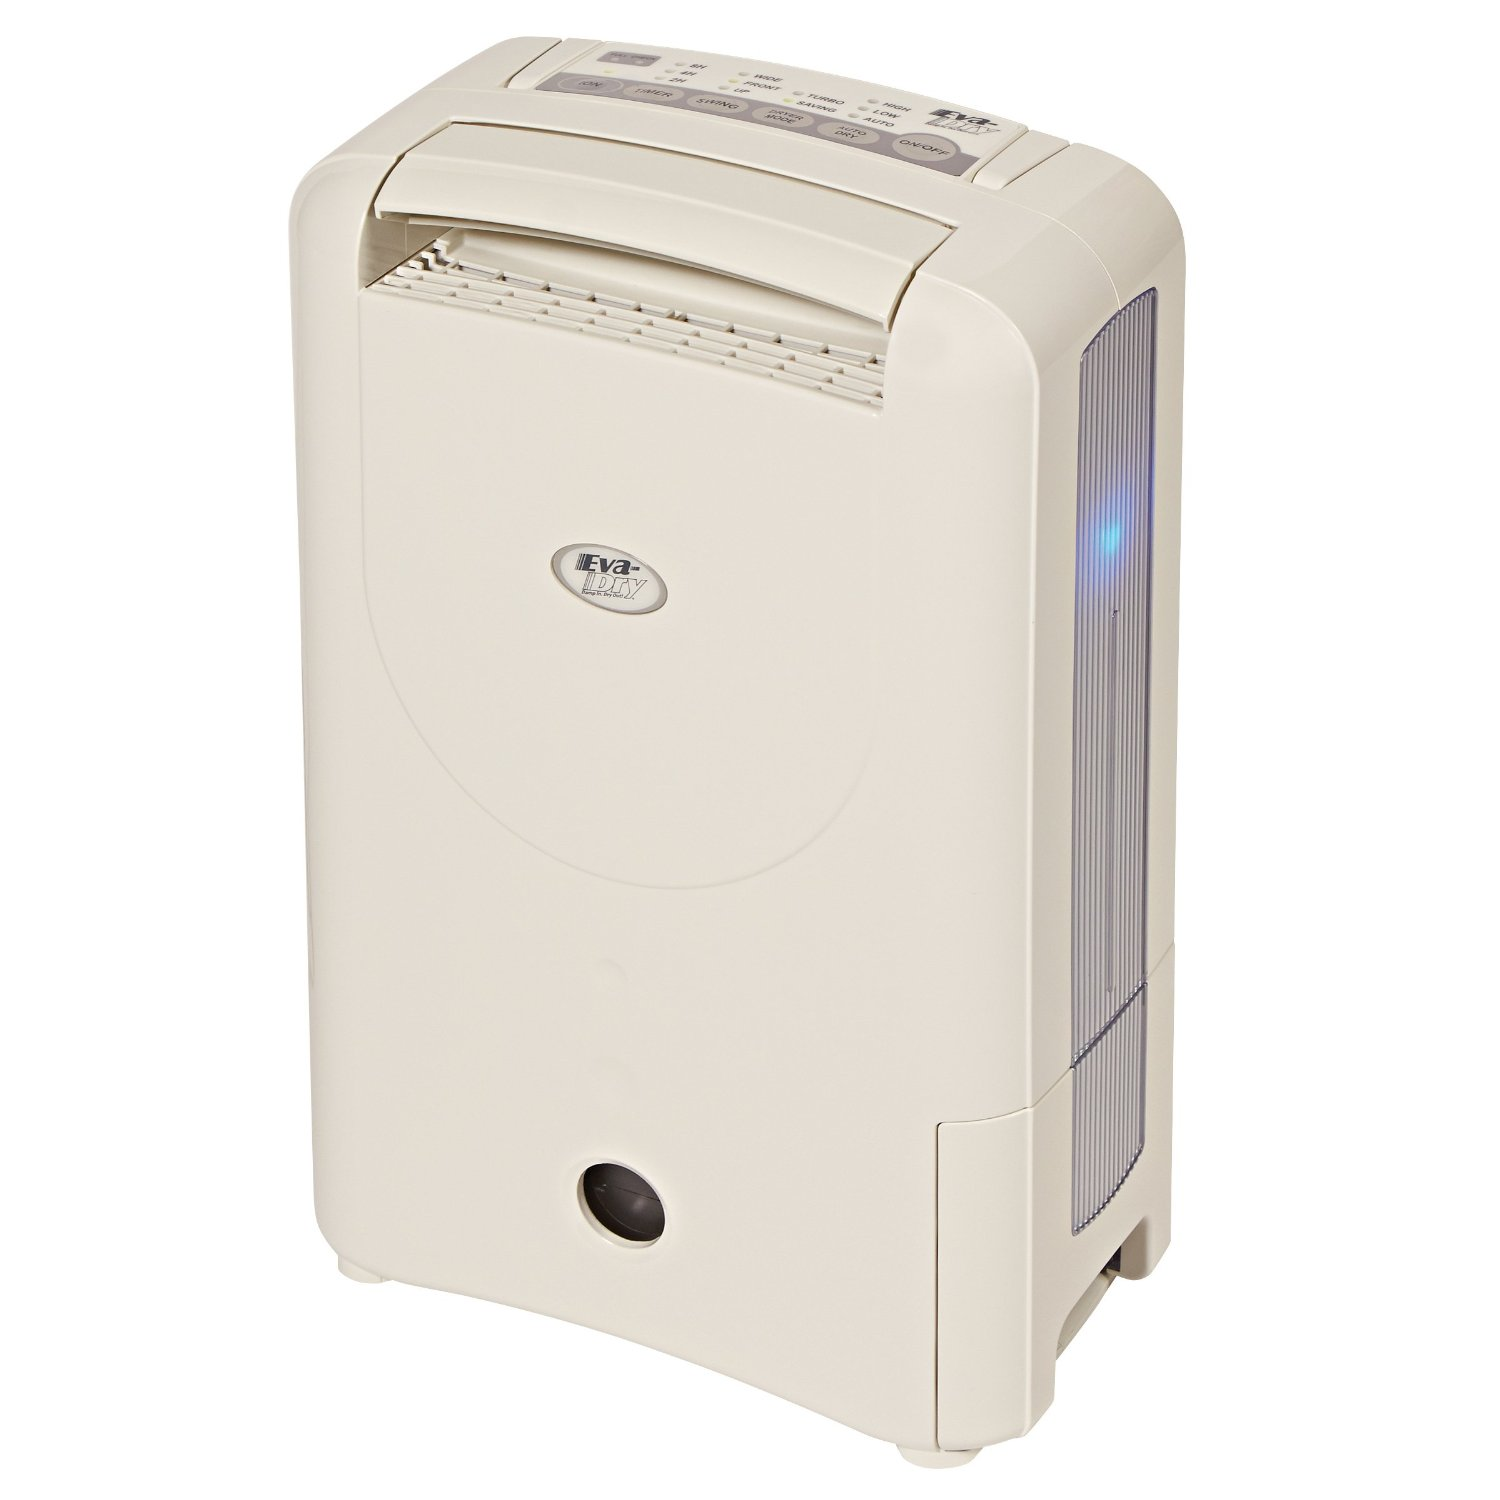 Eva dry Dehumidifier Reviews Ratings Consumer Reports. #2C6E9F